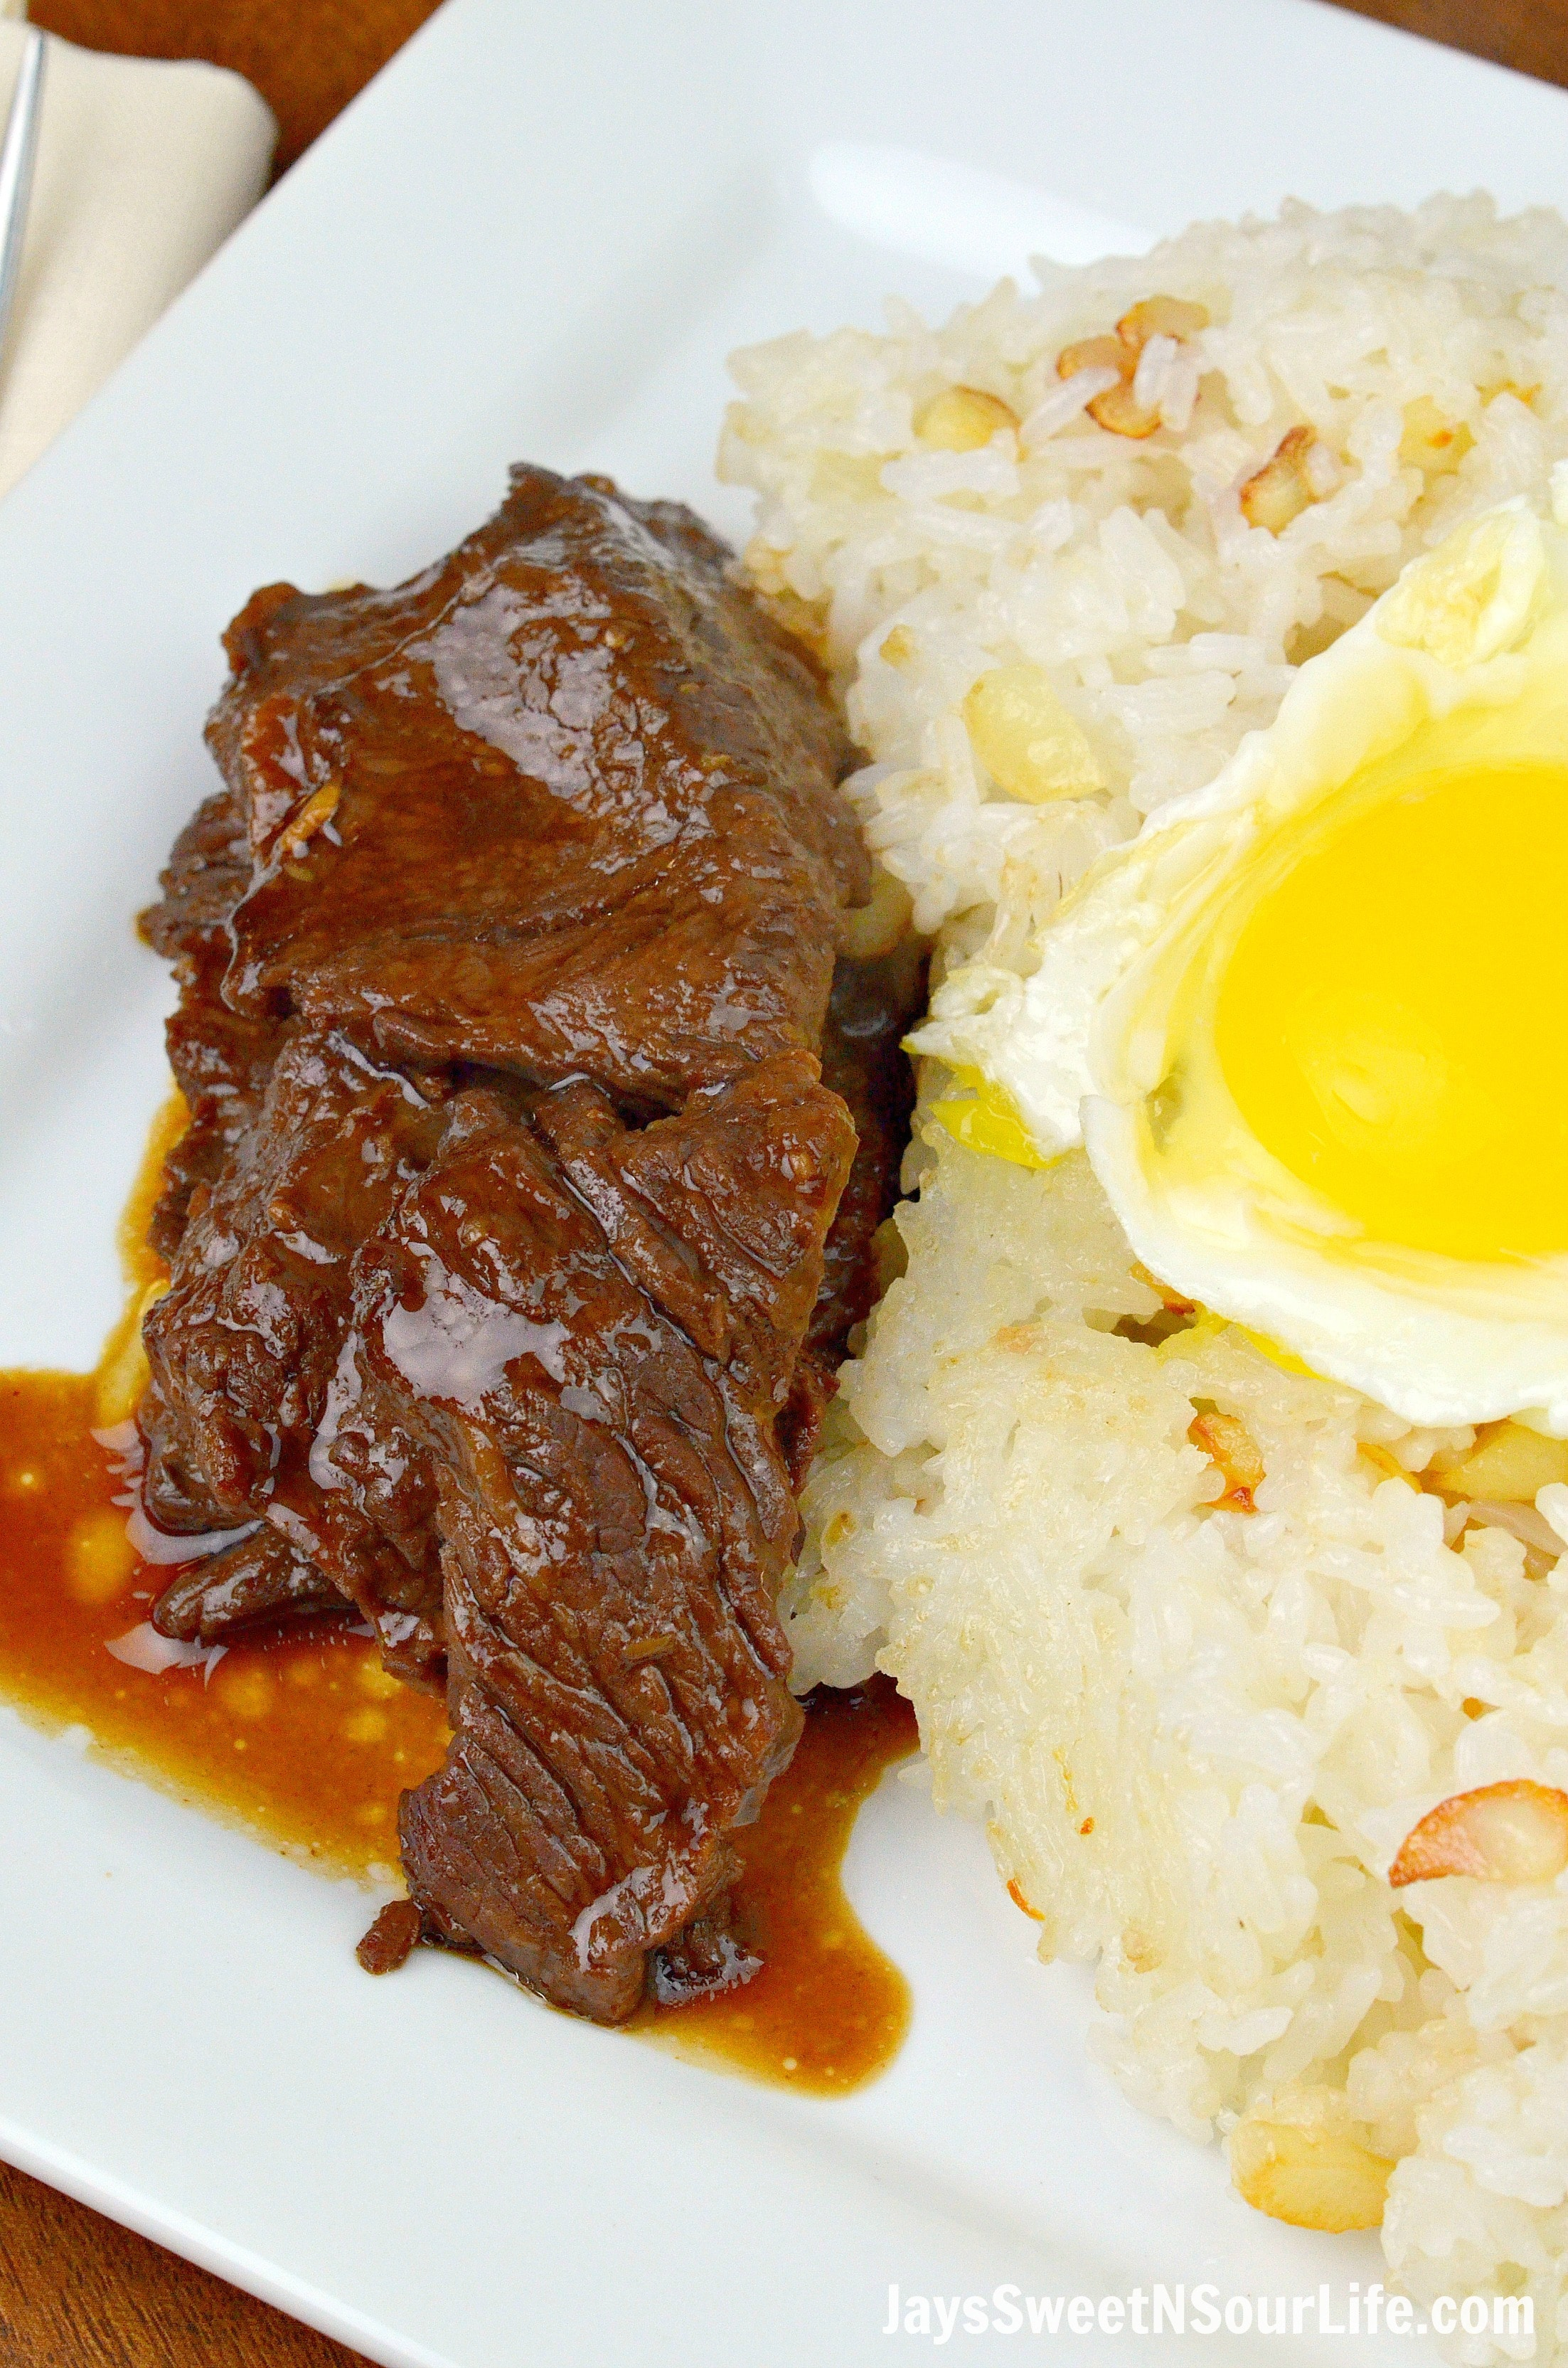 Beef Tapa Plated. Instant Pot Filipino Beef Tapa is a traditional Filipino breakfast dish made inside a pressure cooker. It cuts like butter and is finger licking good.